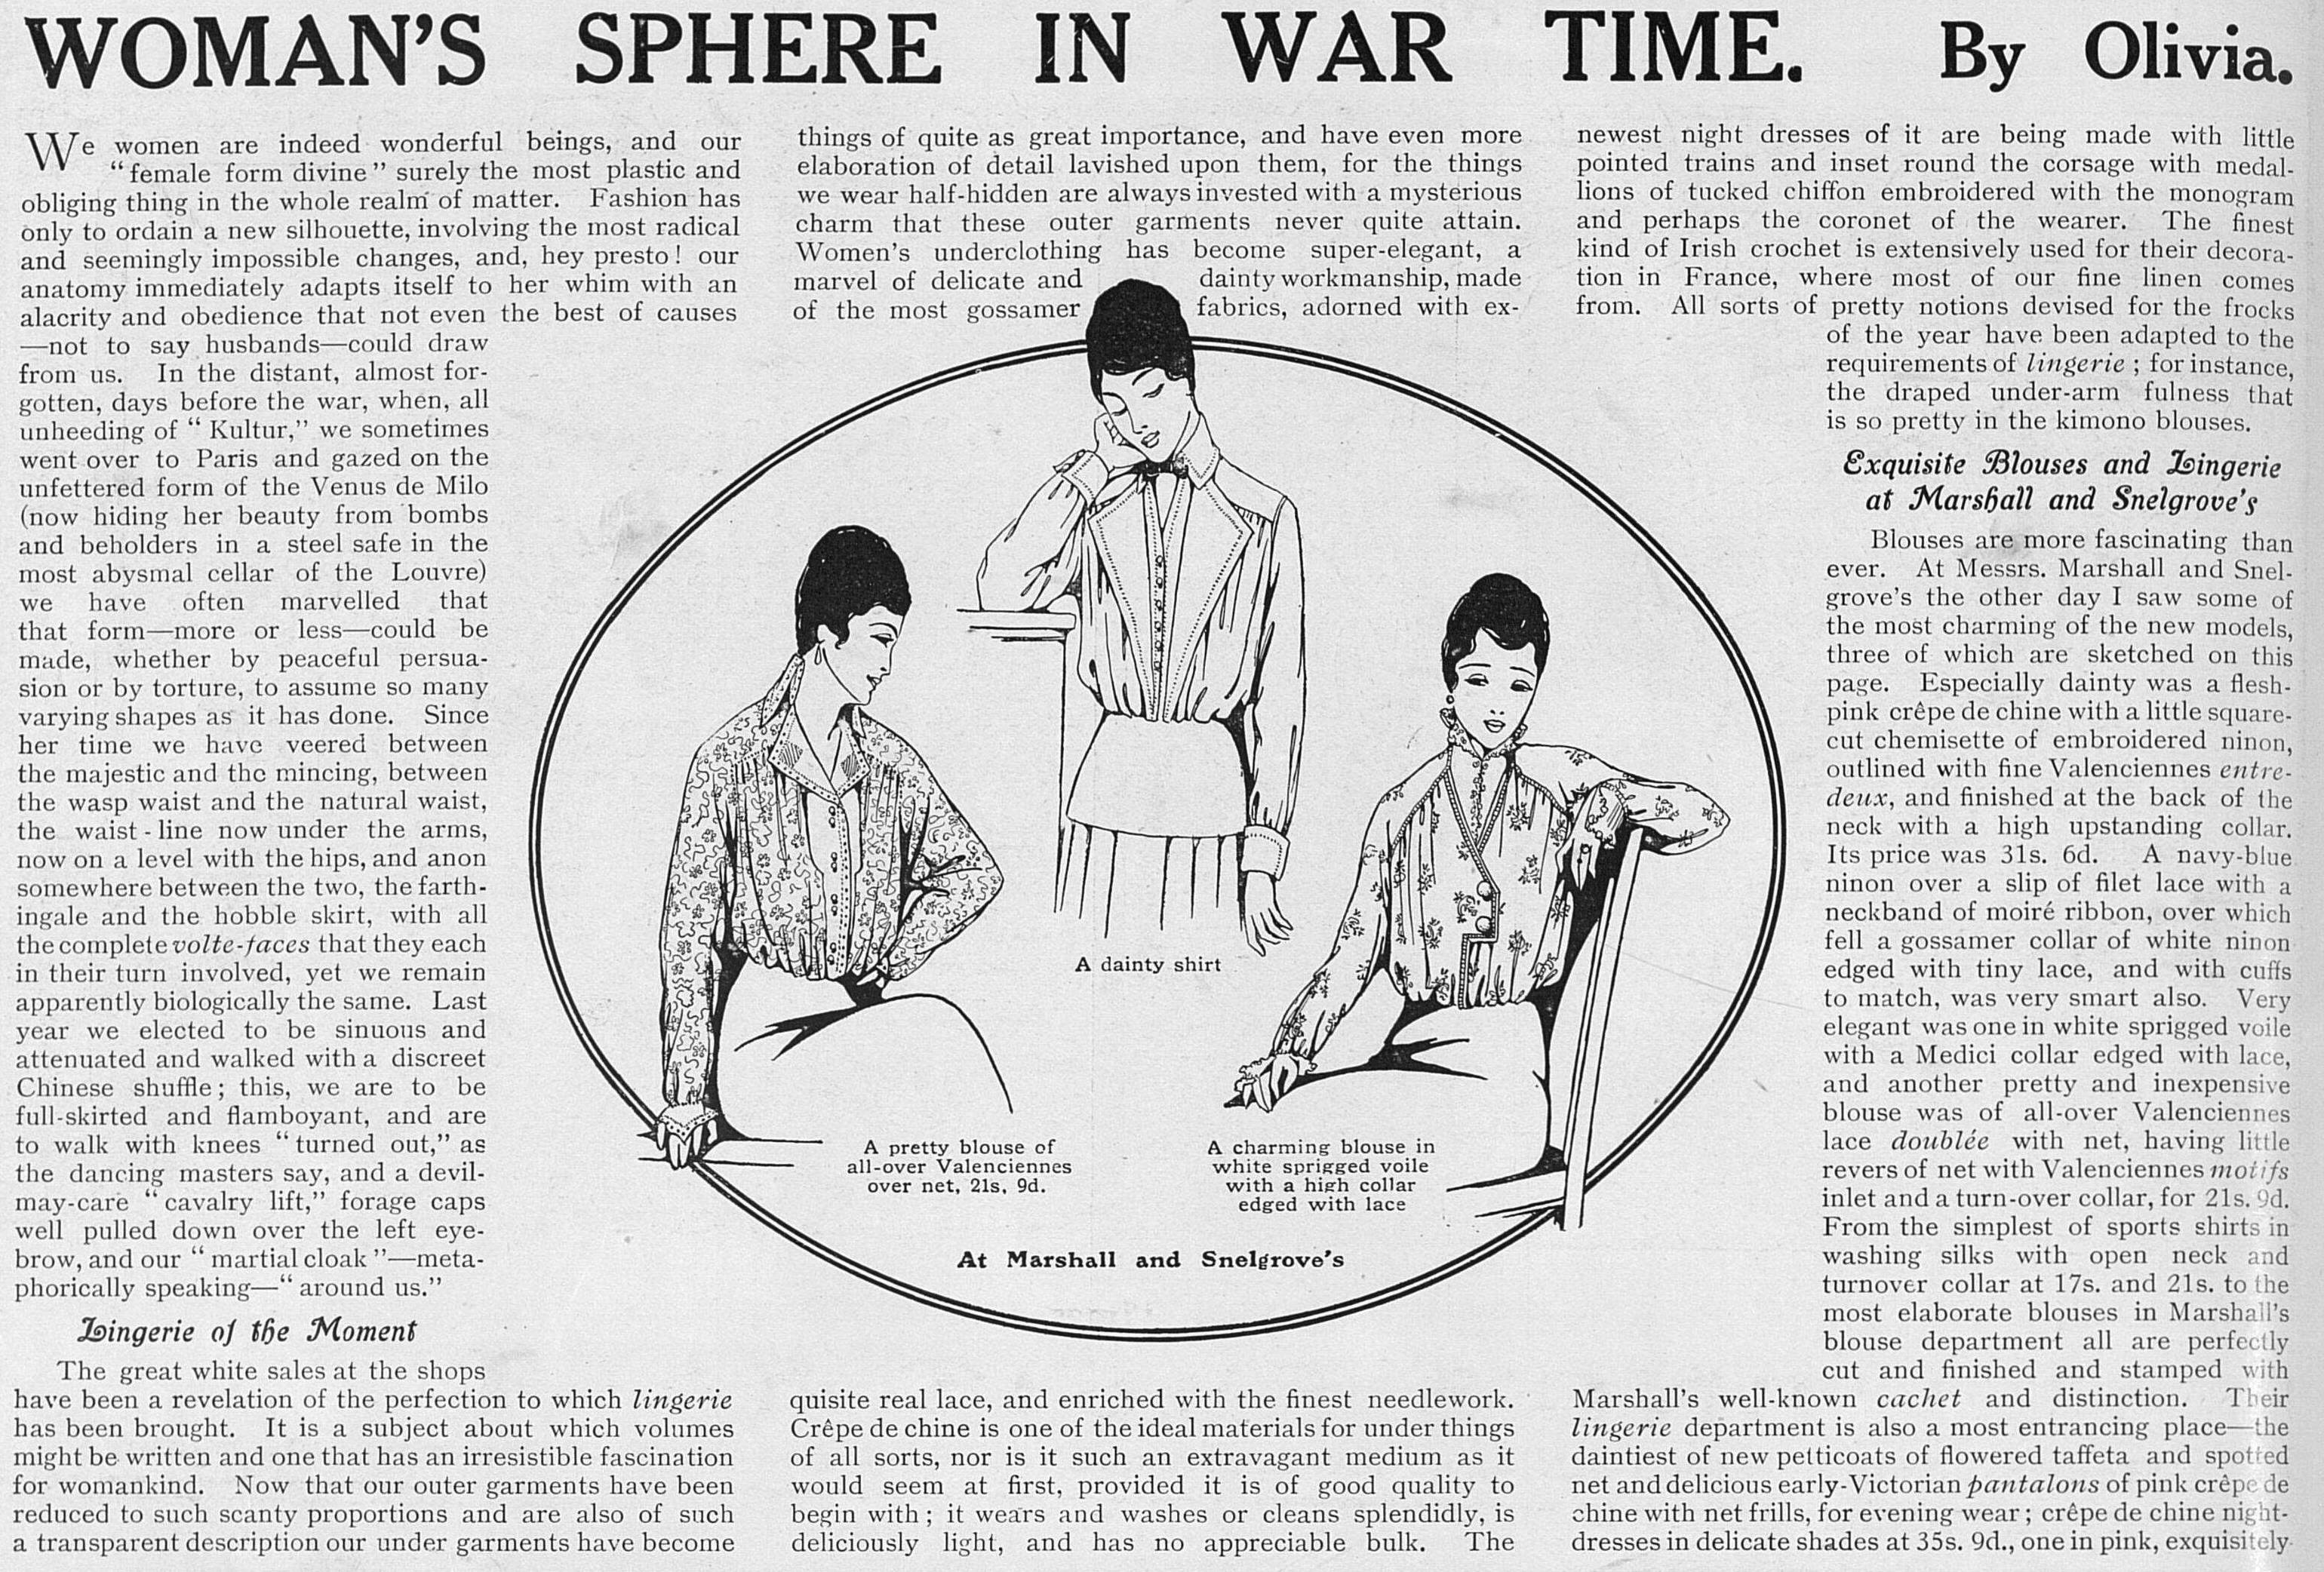 WomansSphereInWarTime_13Mar1915